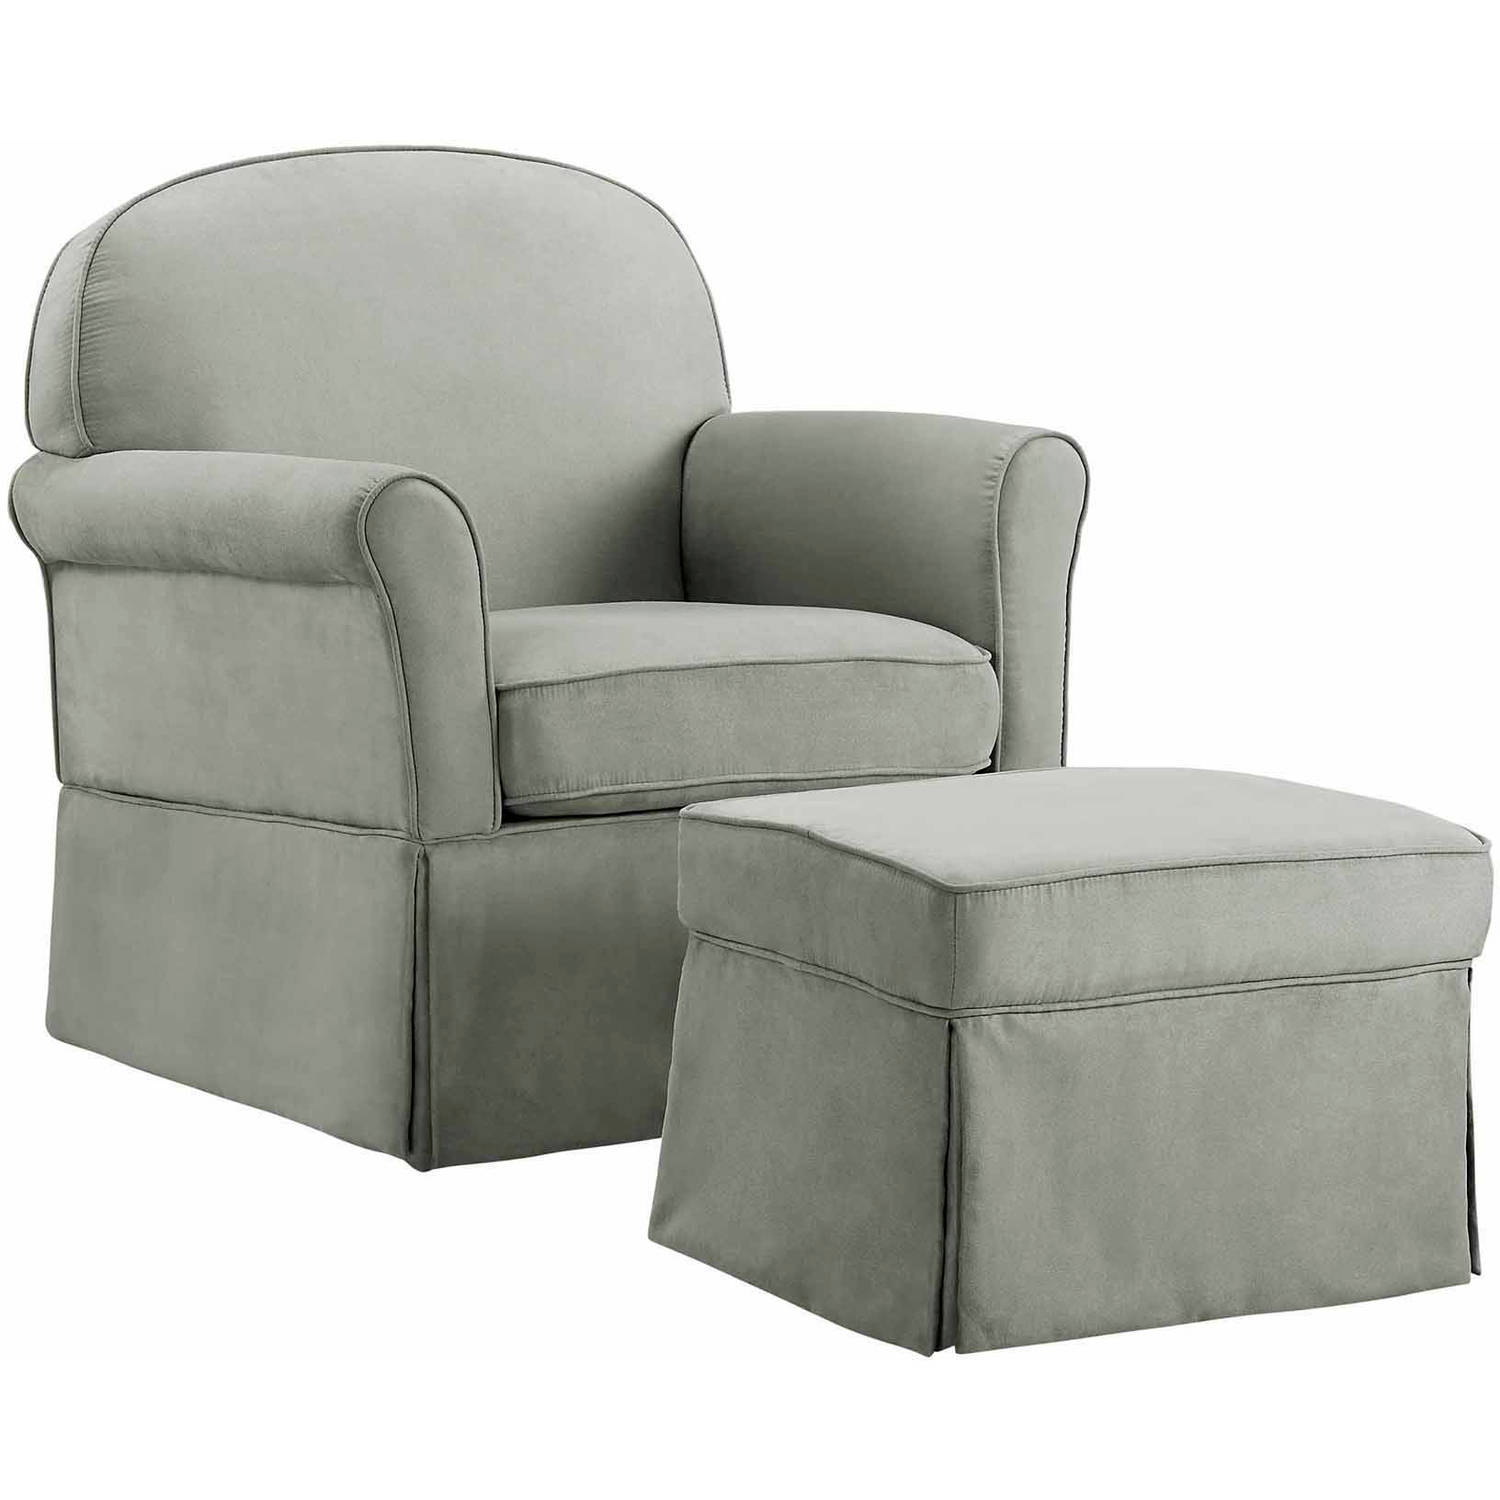 Baby Relax Evan Swivel Glider And Ottoman Gray Walmart Com